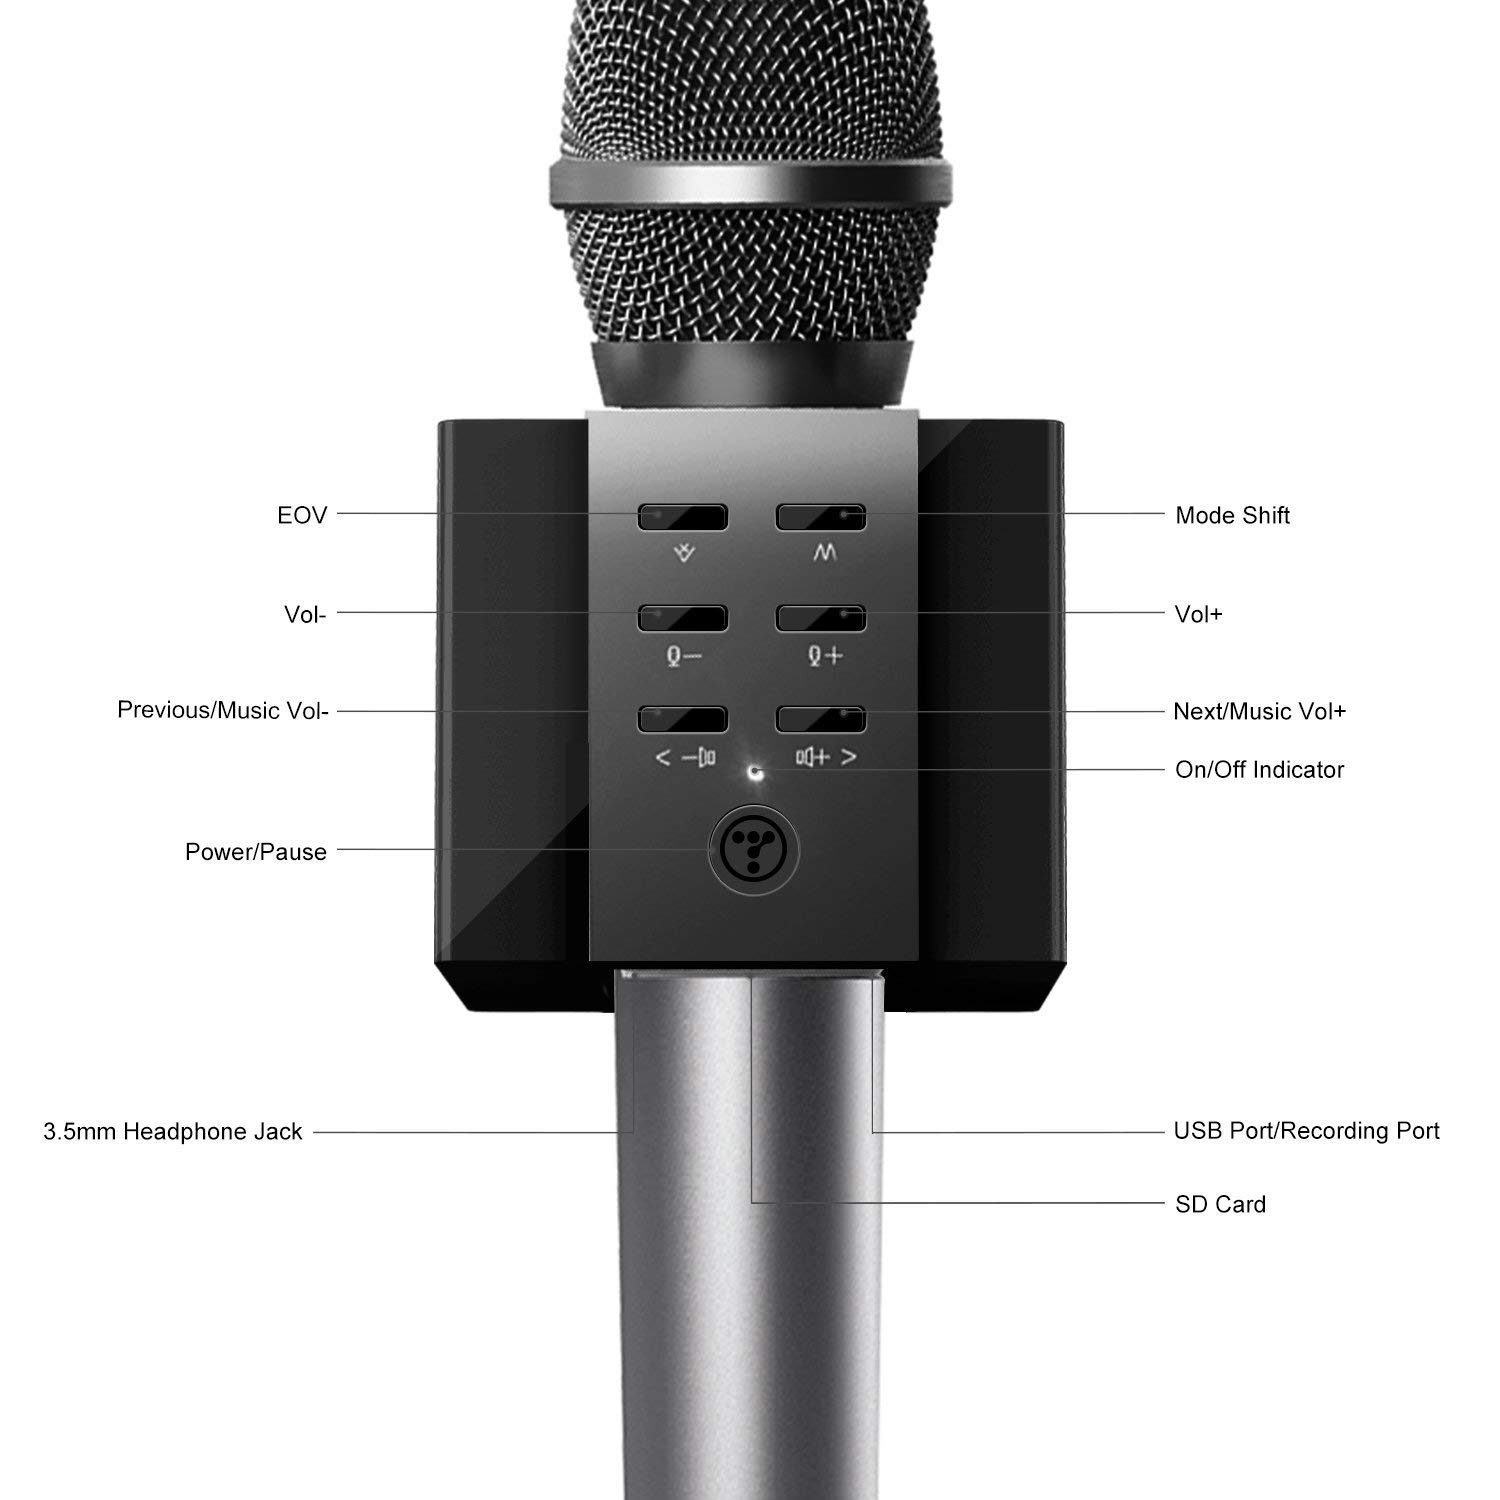 TOSING Wireless Karaoke Microphone for Kids, Top Birthday Party Gifts Ideas for Teens and Adults, Bluetooth Handheld Karaoke Machine, Superior Surrounding, Compatible with iPhone Android Phones by TOSING (Image #2)